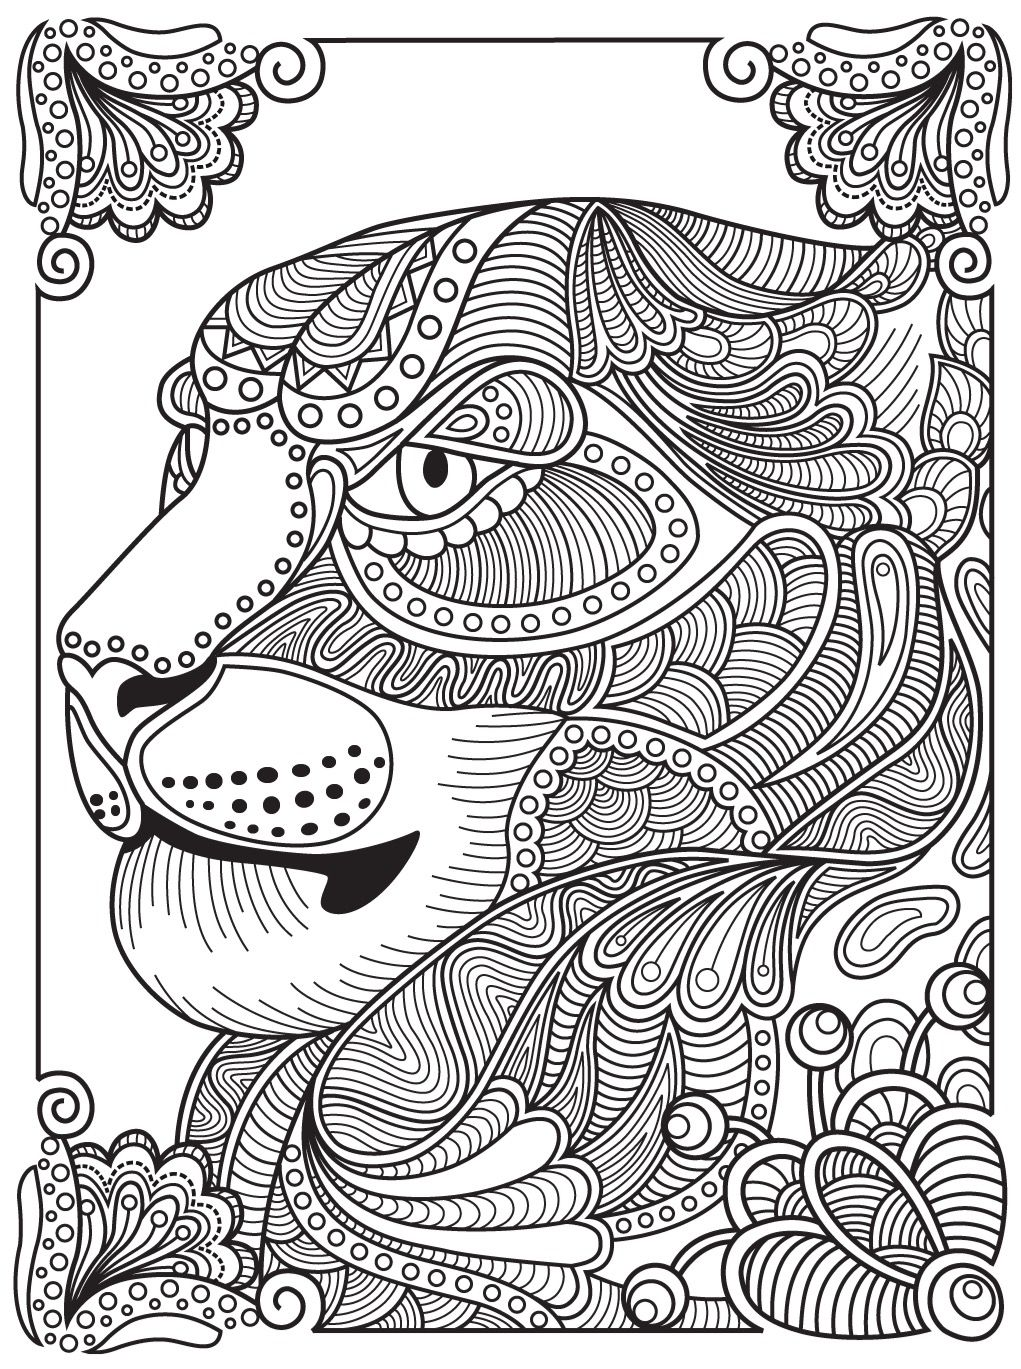 - Cats To Color Colorish: Free Coloring App For Adults By